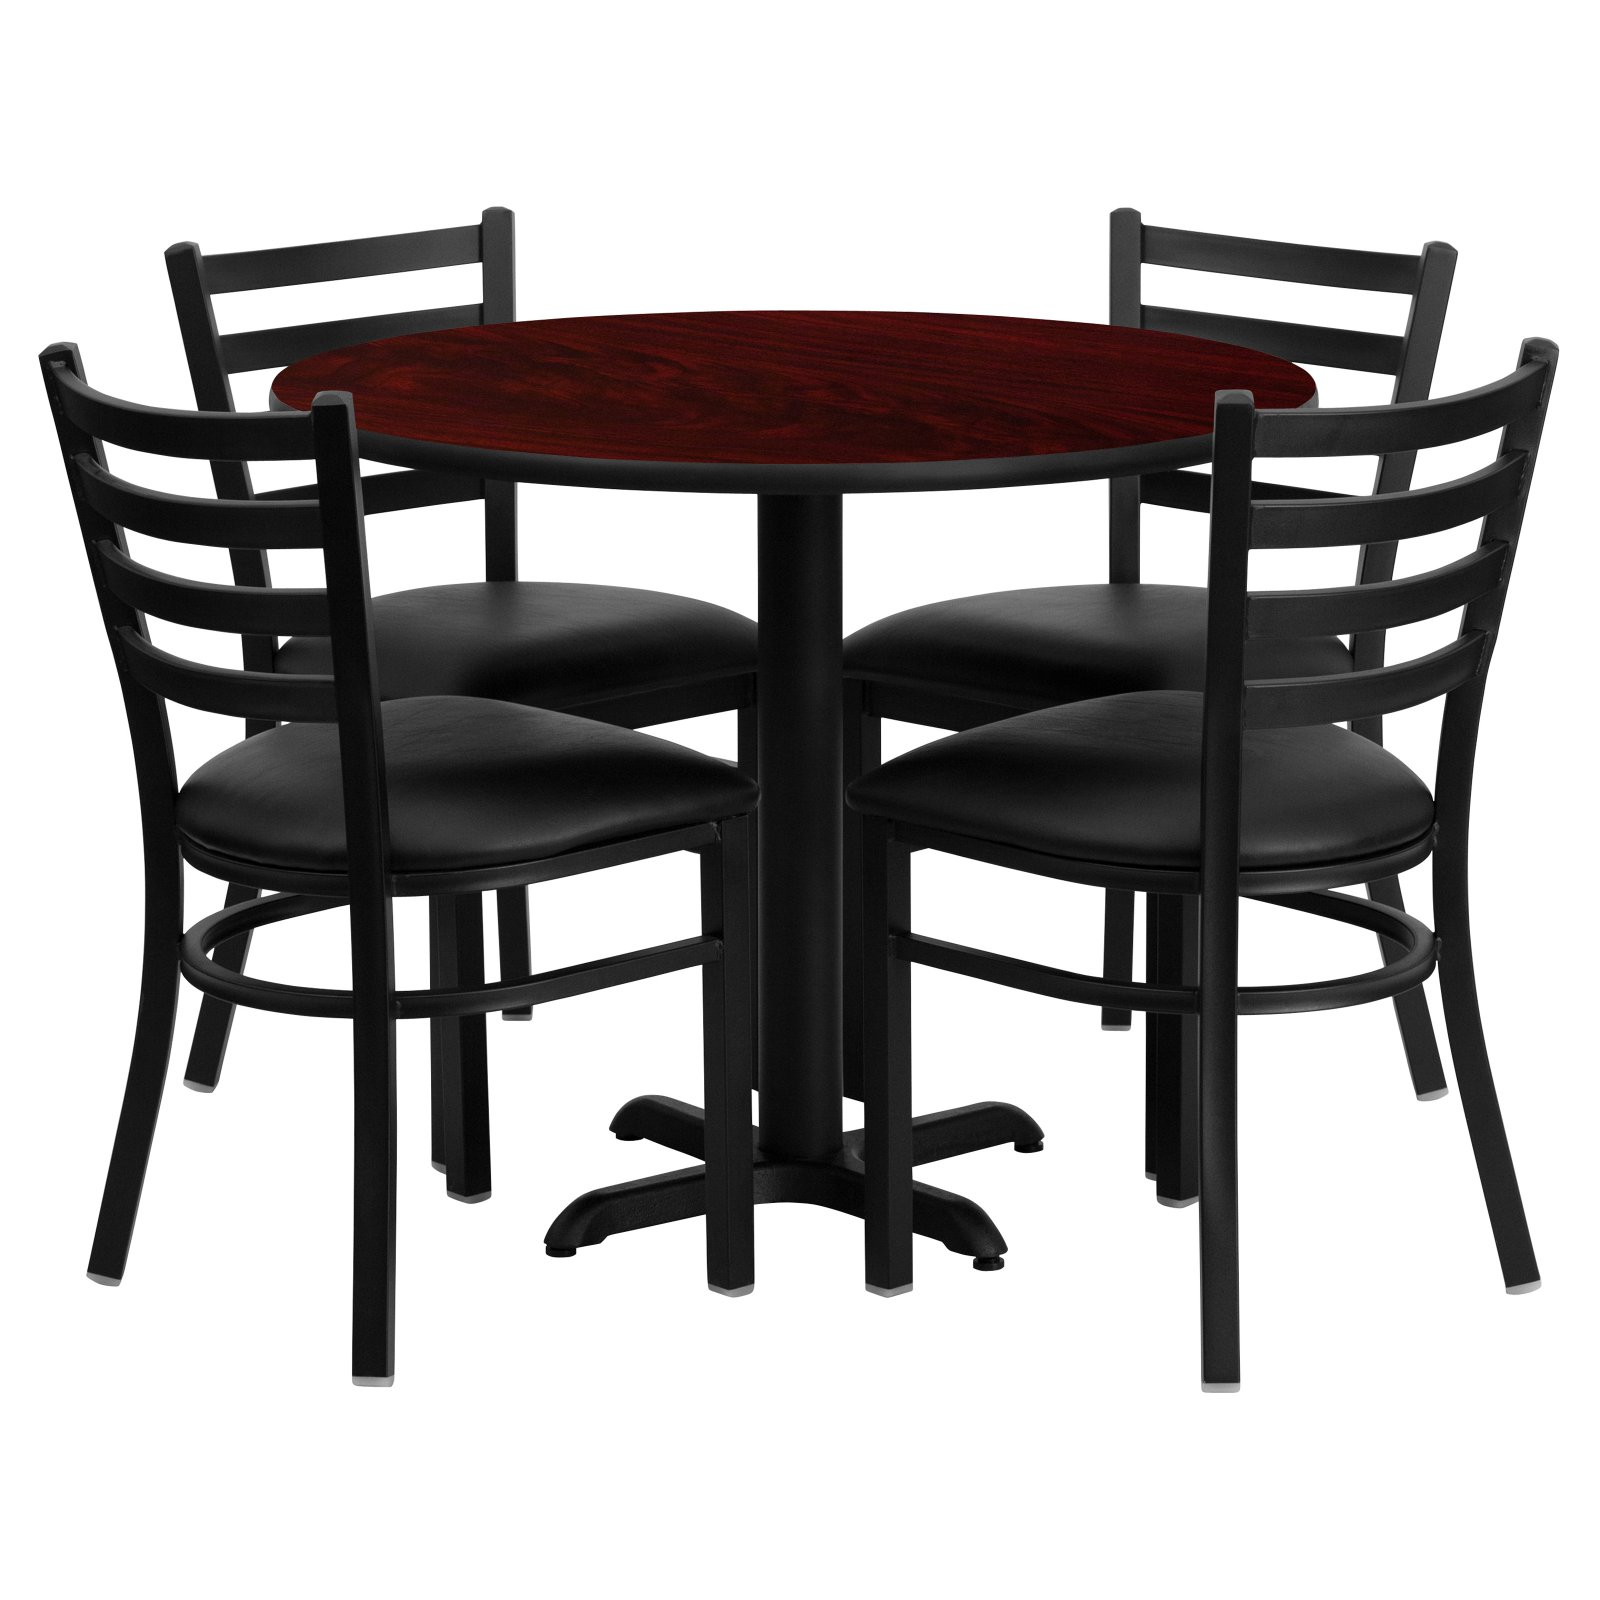 Flash Furniture 36'' Round Mahogany Laminate Table Set with 4 Ladder Back Metal Chairs, Black Vinyl Seat Black, Mahogany